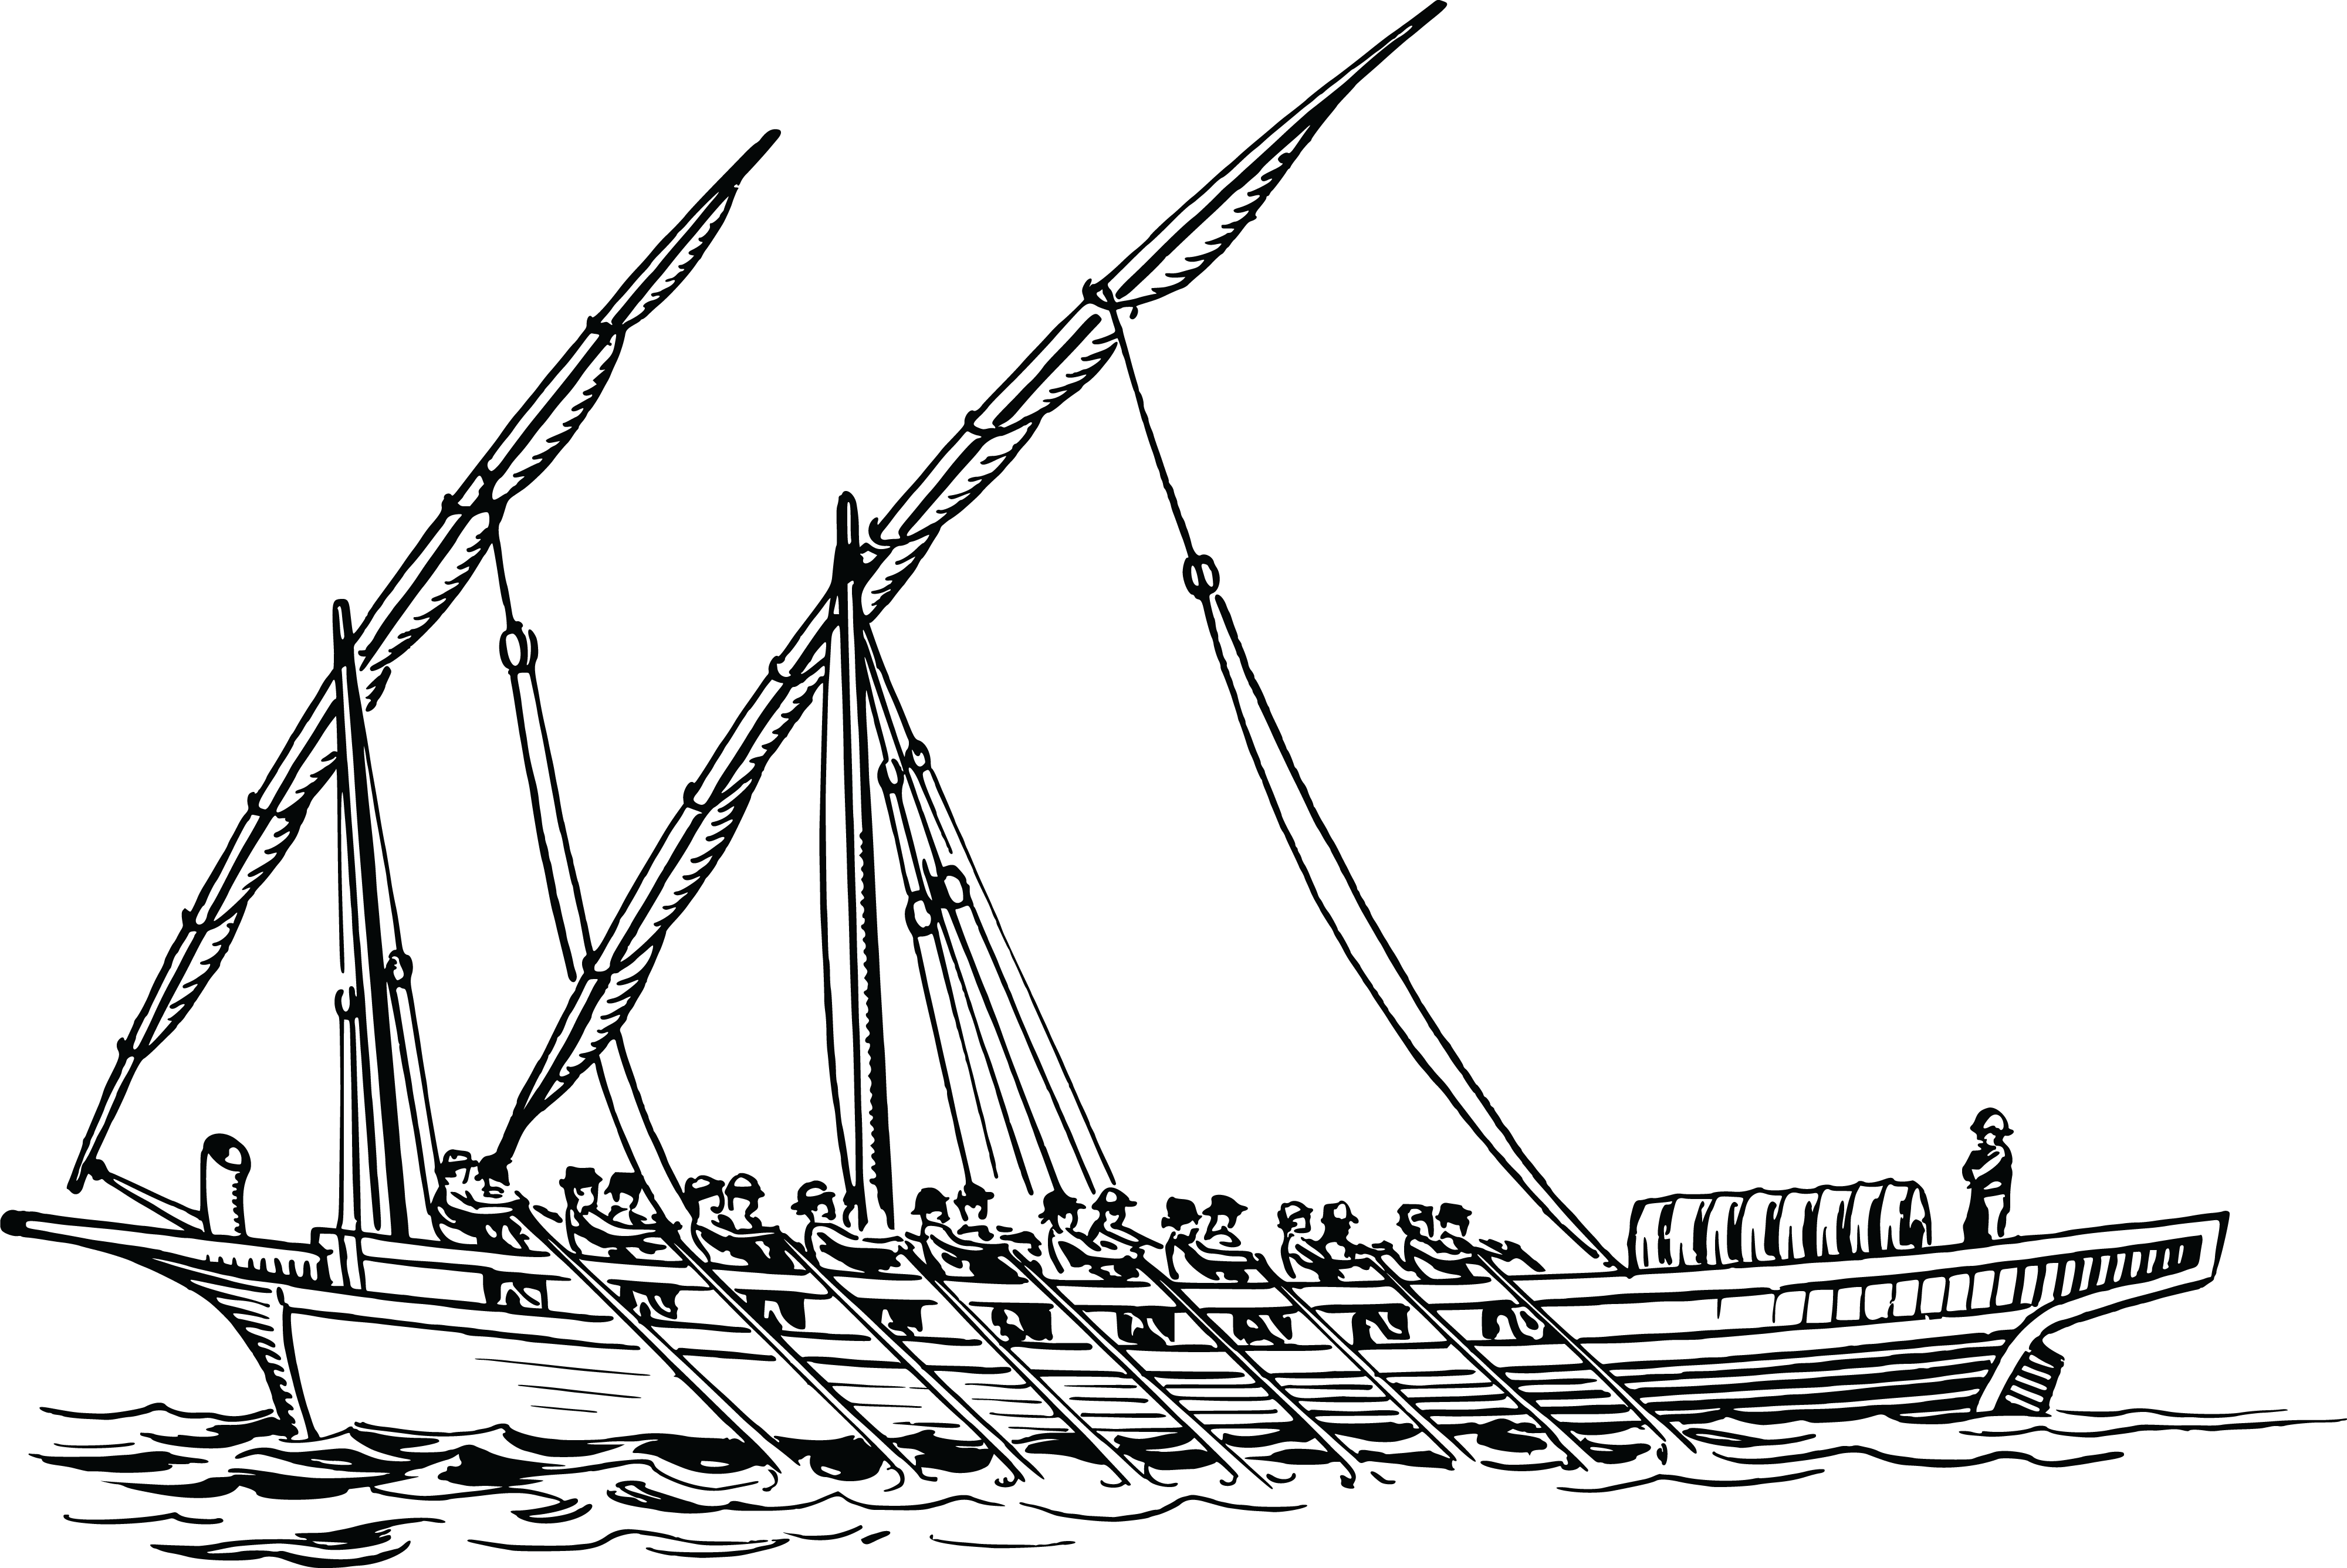 svg transparent library Yacht clipart fleet ship. Collection of free doat